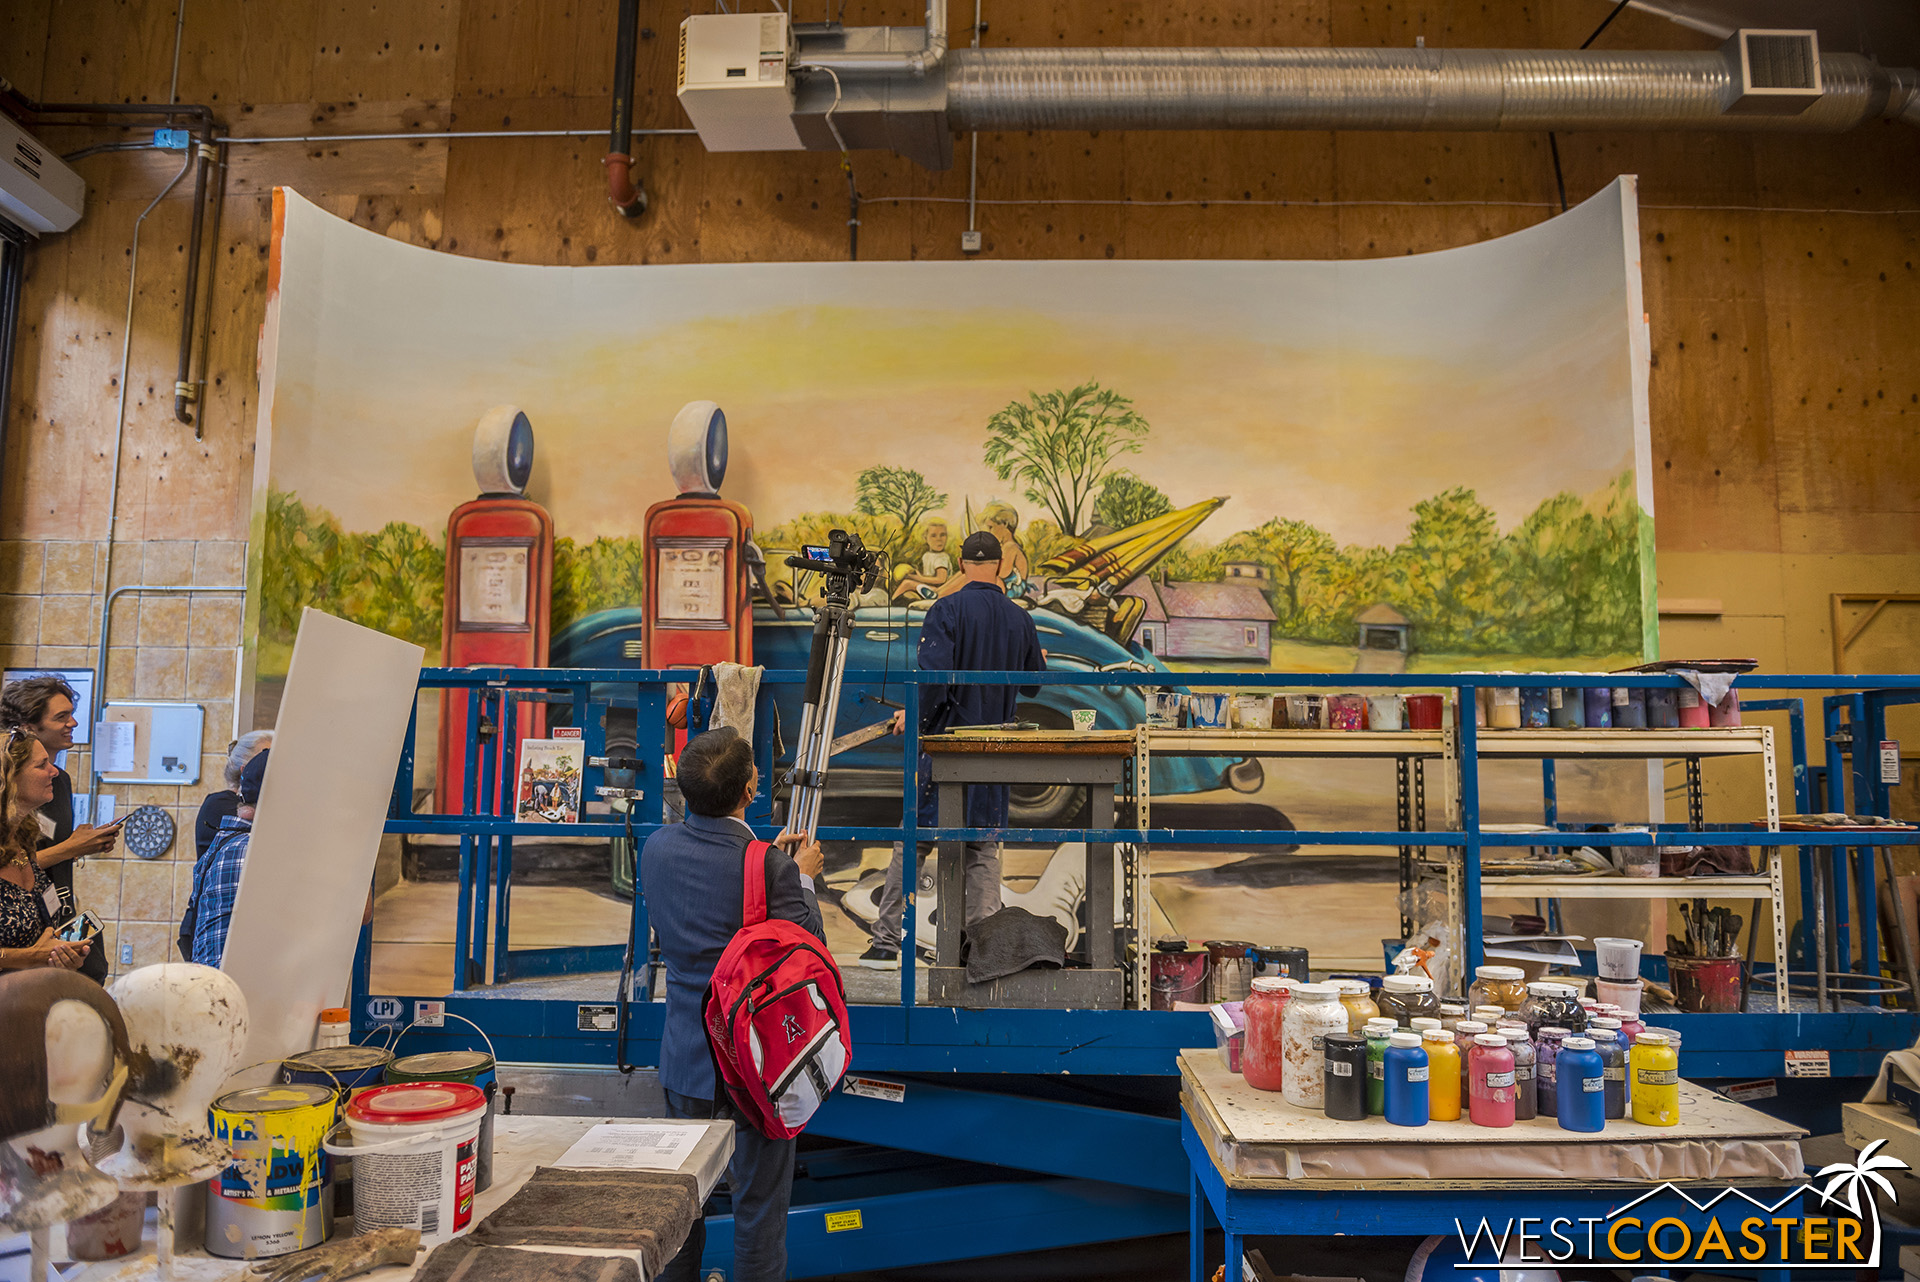 Inside a warehouse, an artist works on a backdrop to one of the paintings that will be recreated.